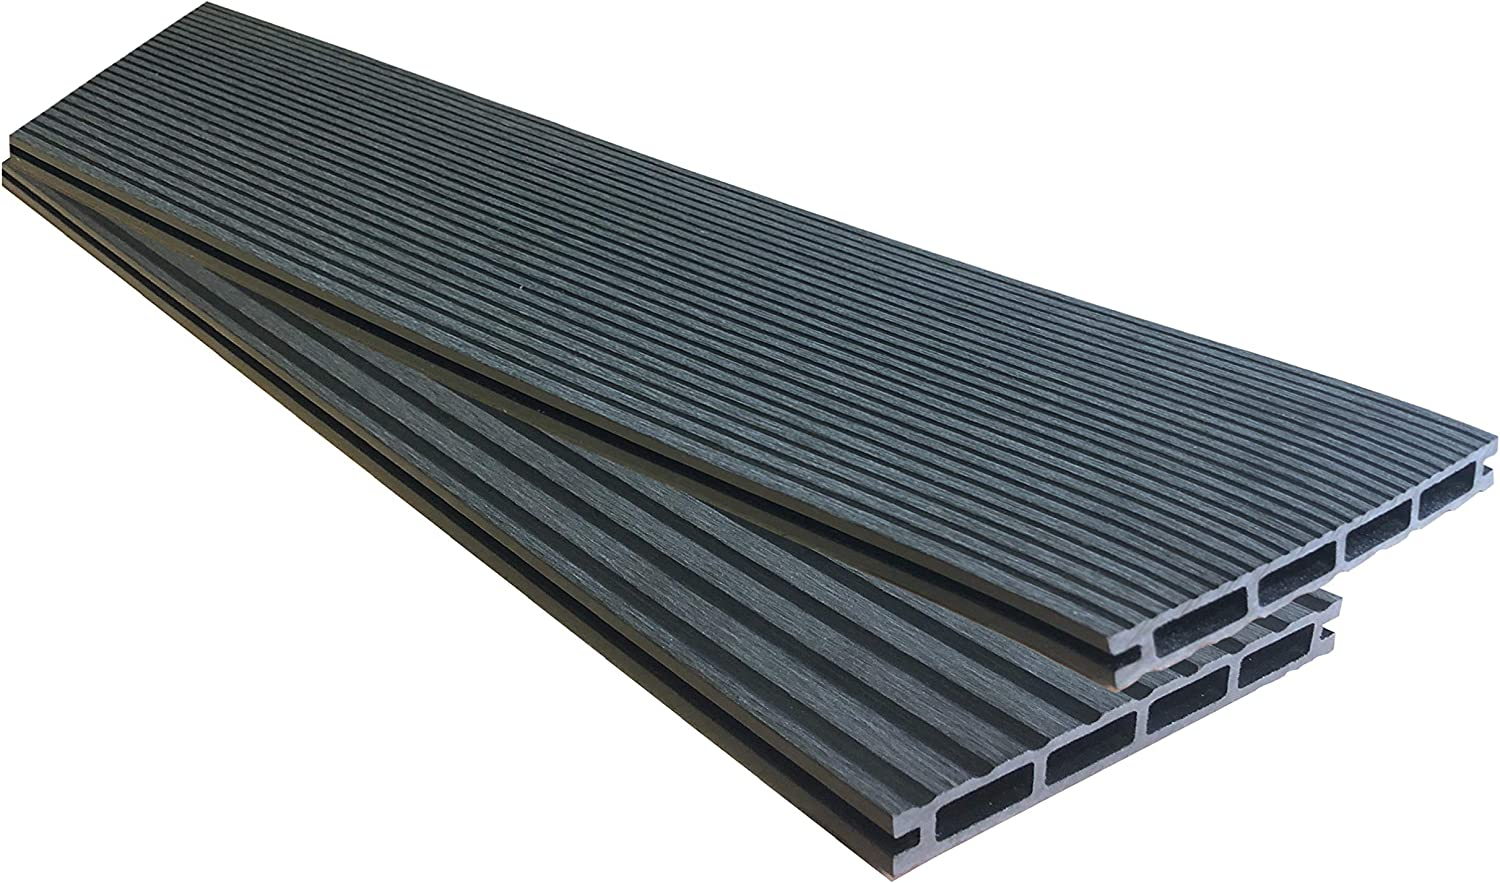 Buildersmerchant   Composite Decking 3.6m, 1 pc, 3.6 Meter (142 inches)